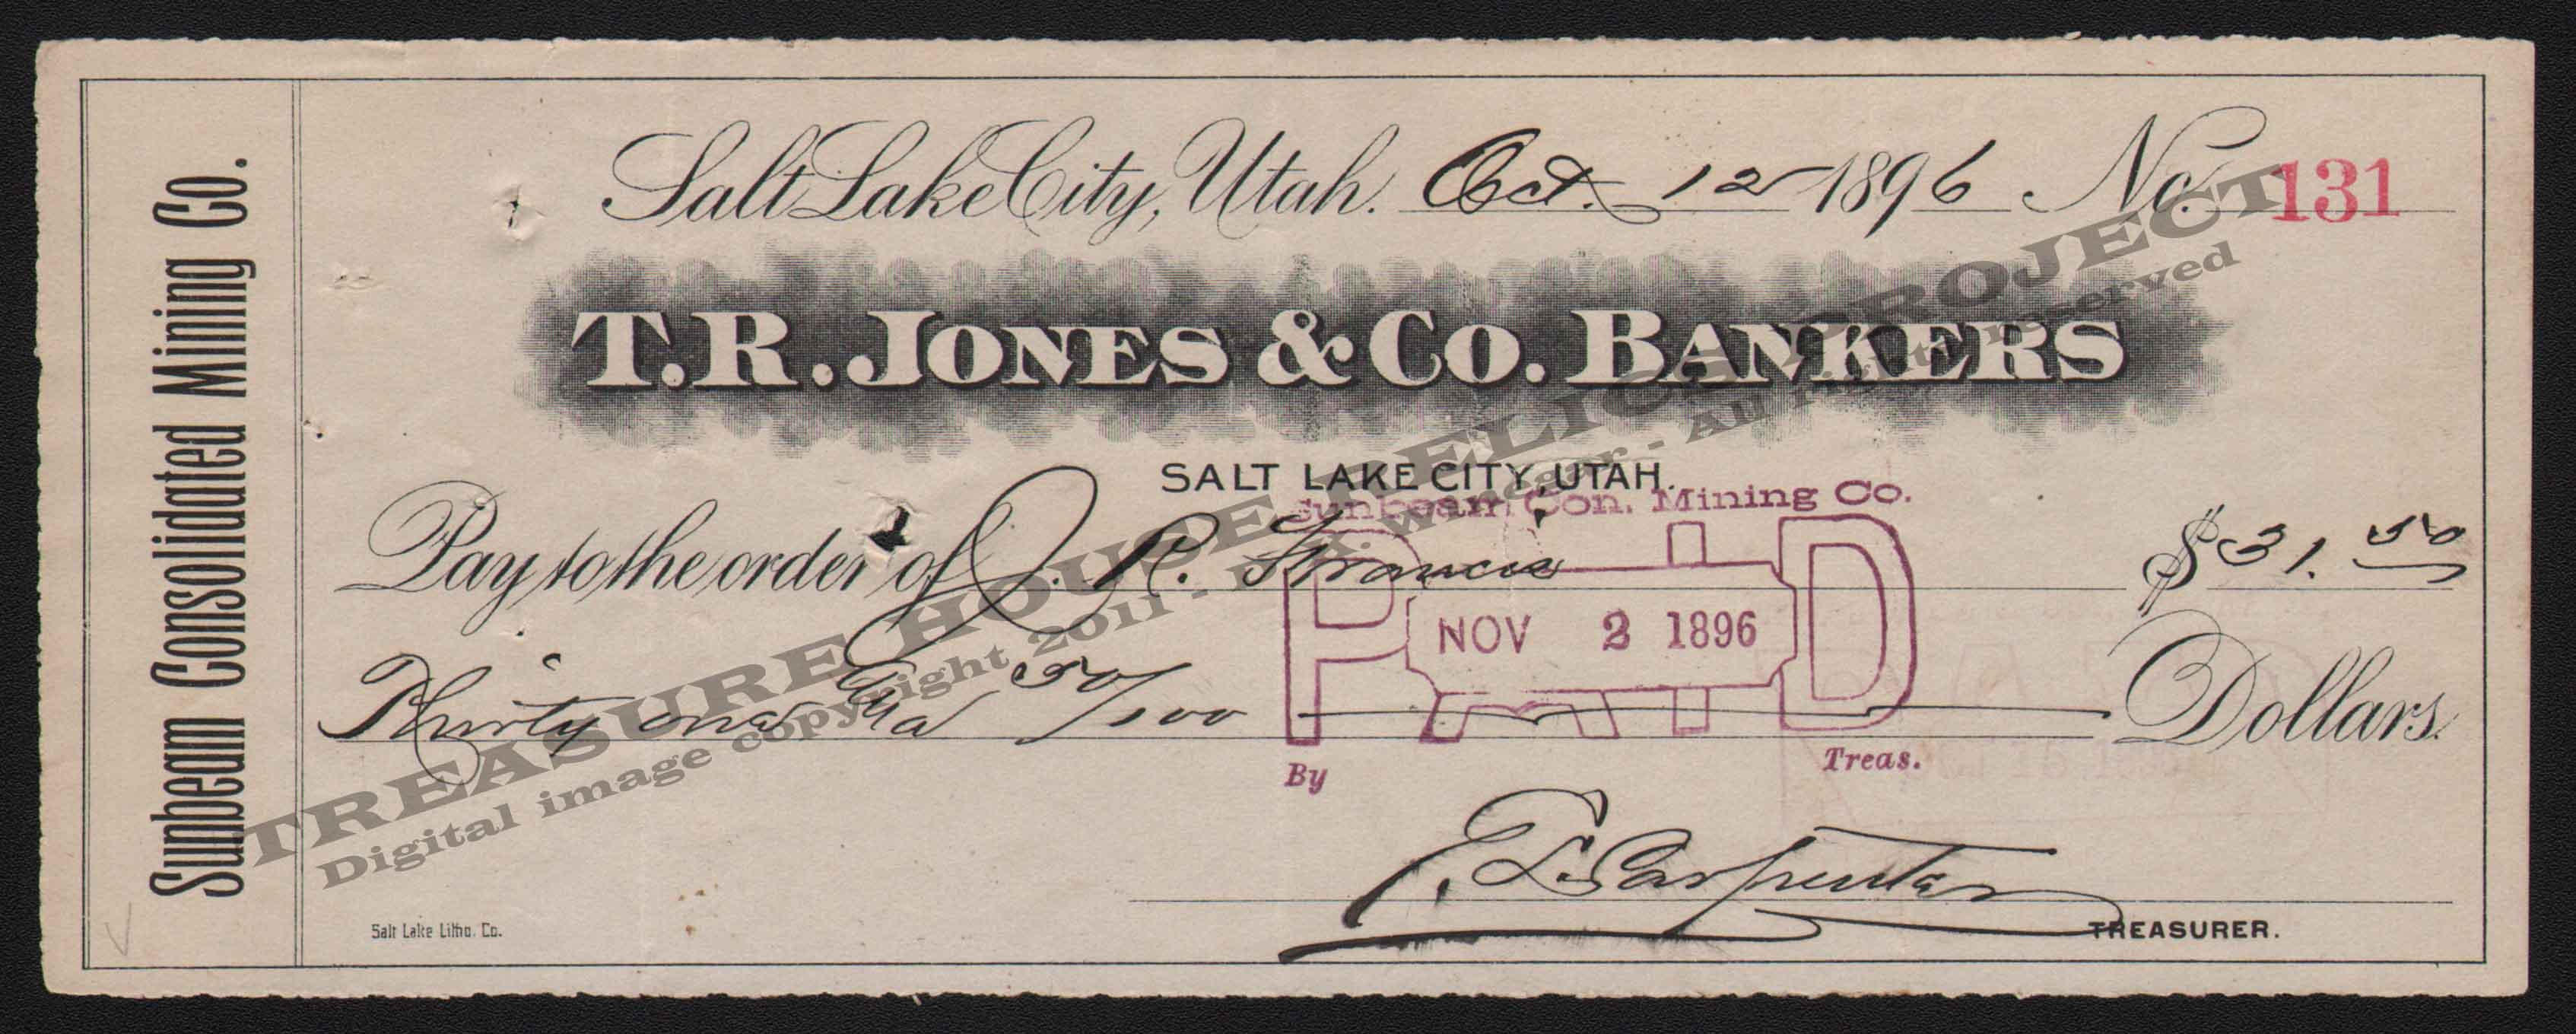 CHECK_-_SUNBEAM_MINING_CO_T_R_JONES_BANKERS_131_1896_400_EMBOSS.jpg